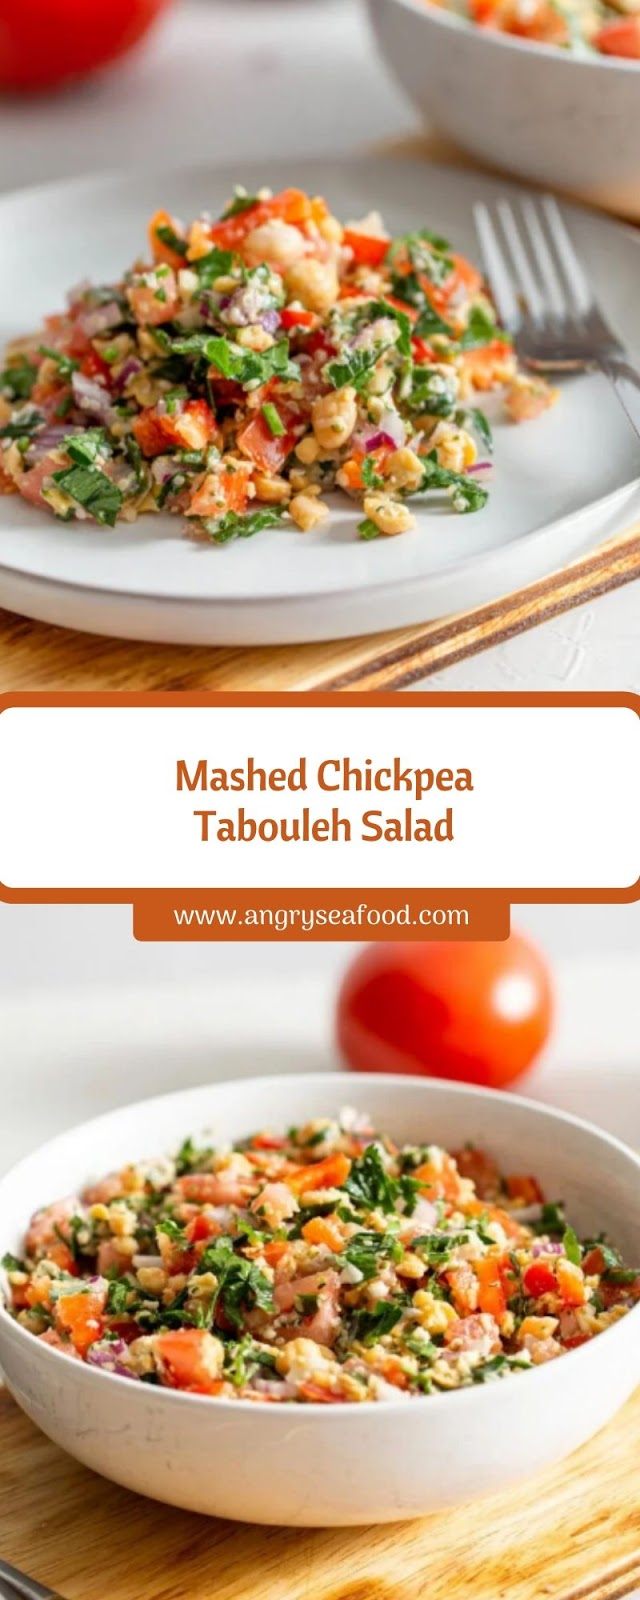 Mashed Chickpea Tabouleh Salad